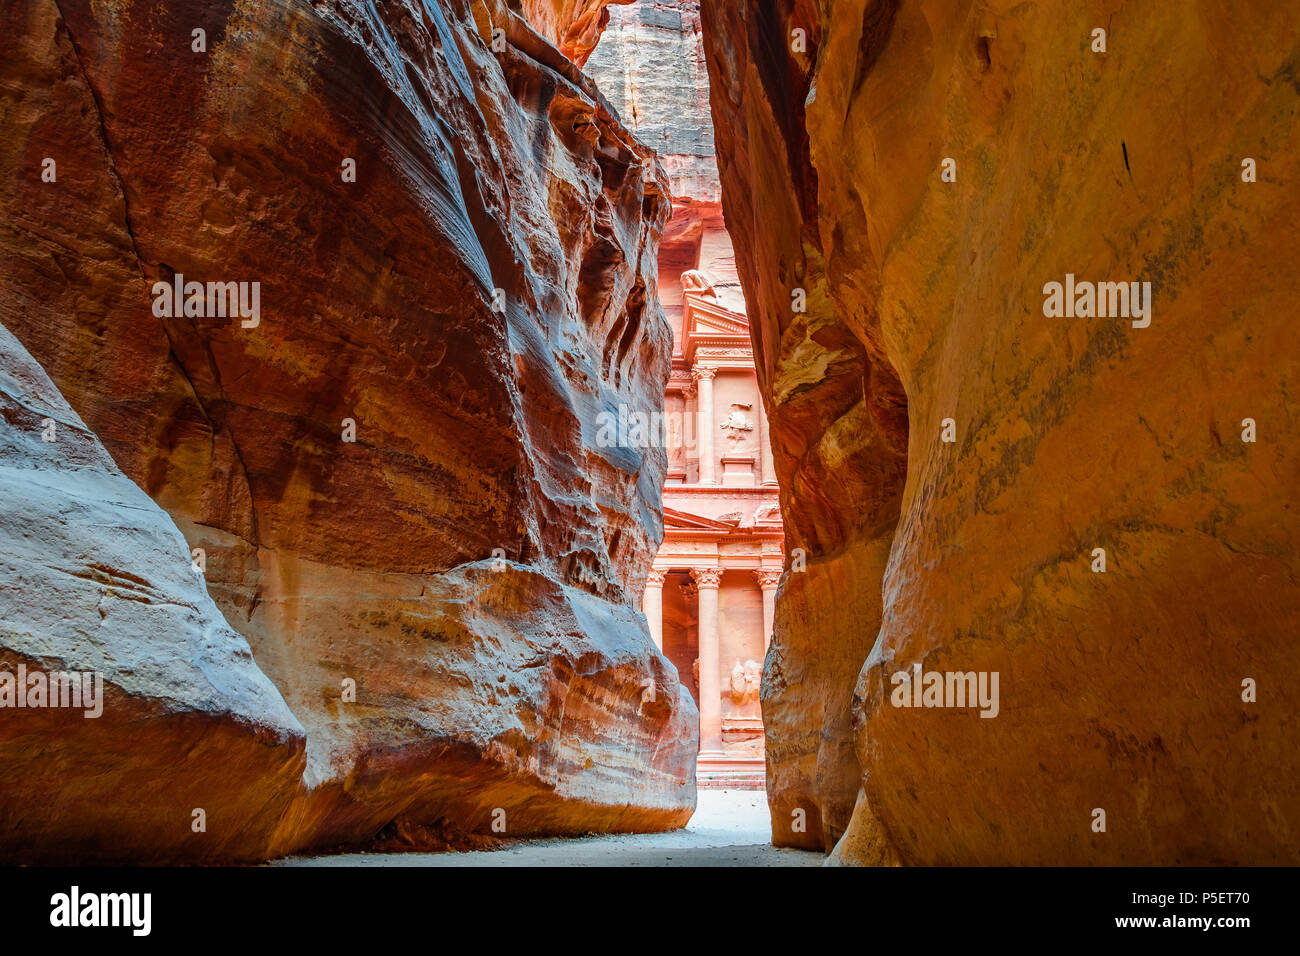 HDR Shot of the Siq, the canyon ending in the Treasury in the Lost City of Petra, Jordania - Stock Image